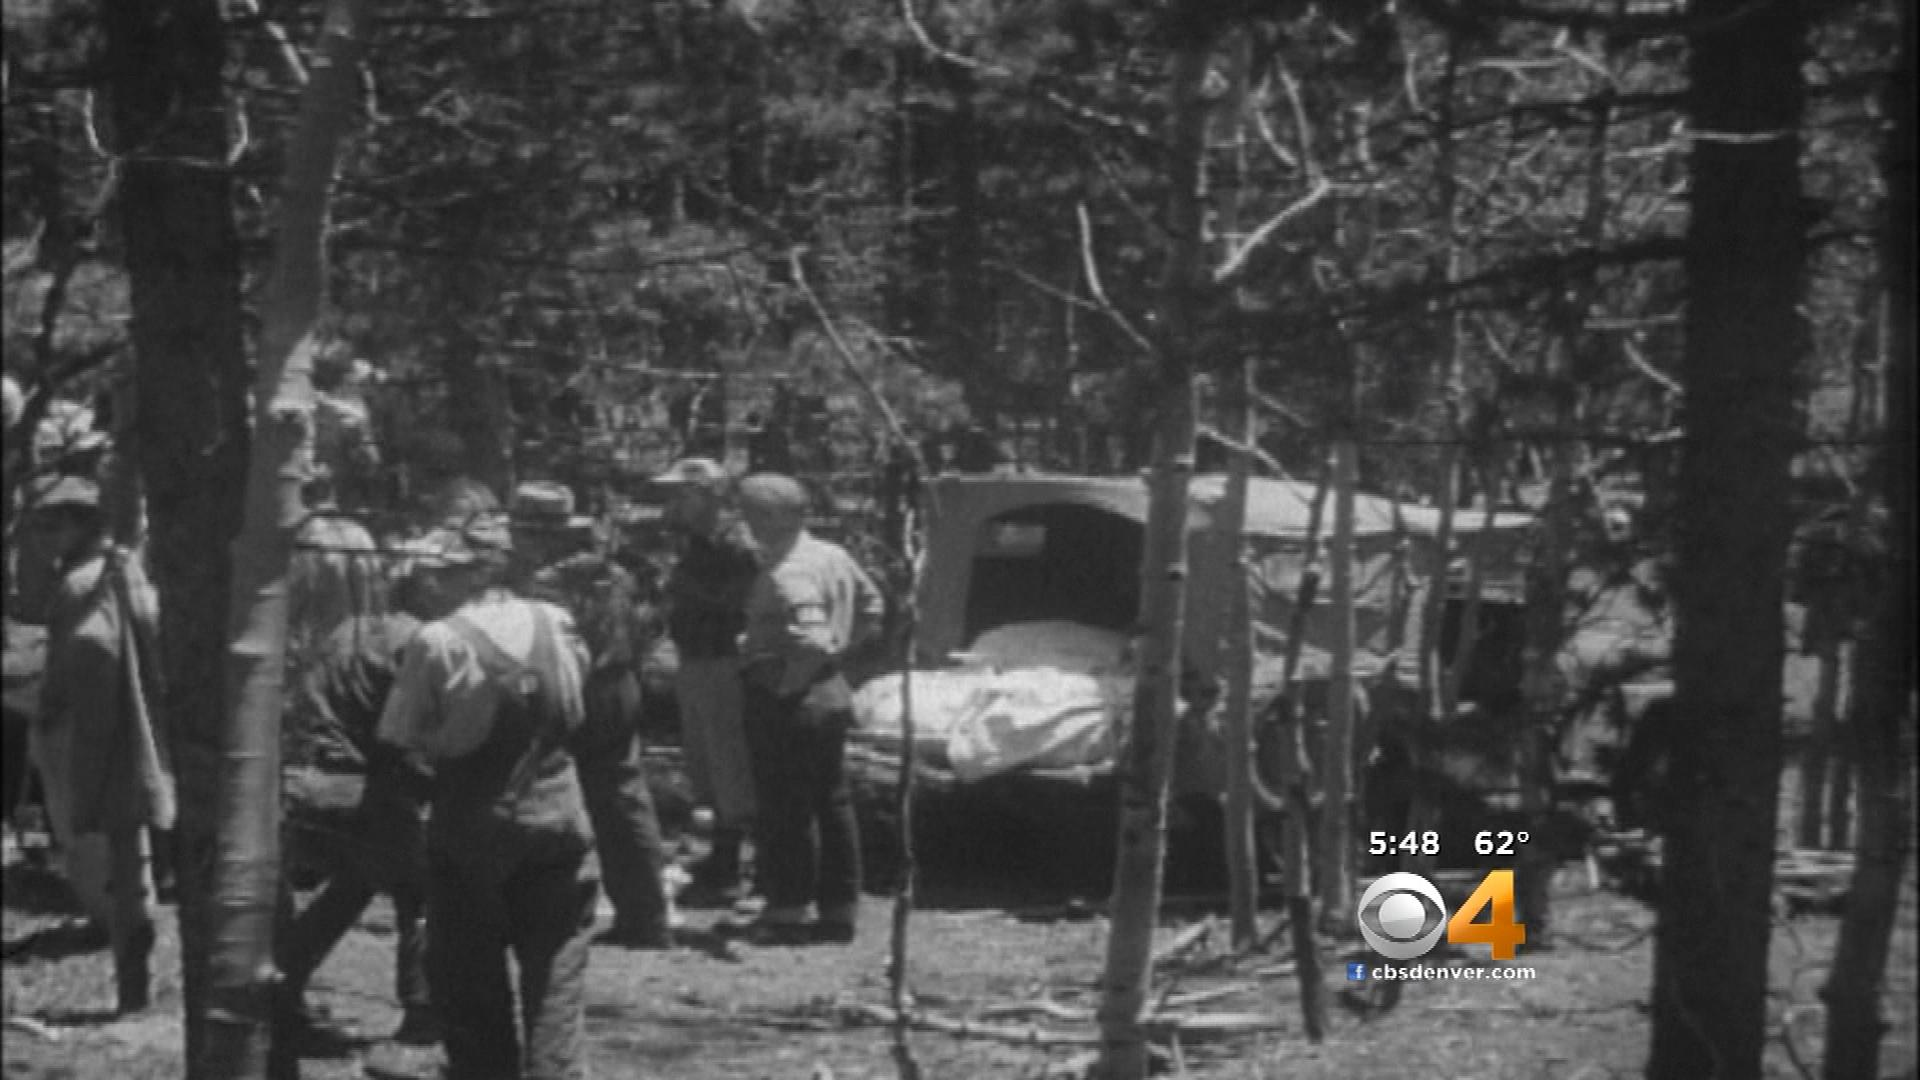 News reel footage documents a crash decades ago. (credit: CBS)